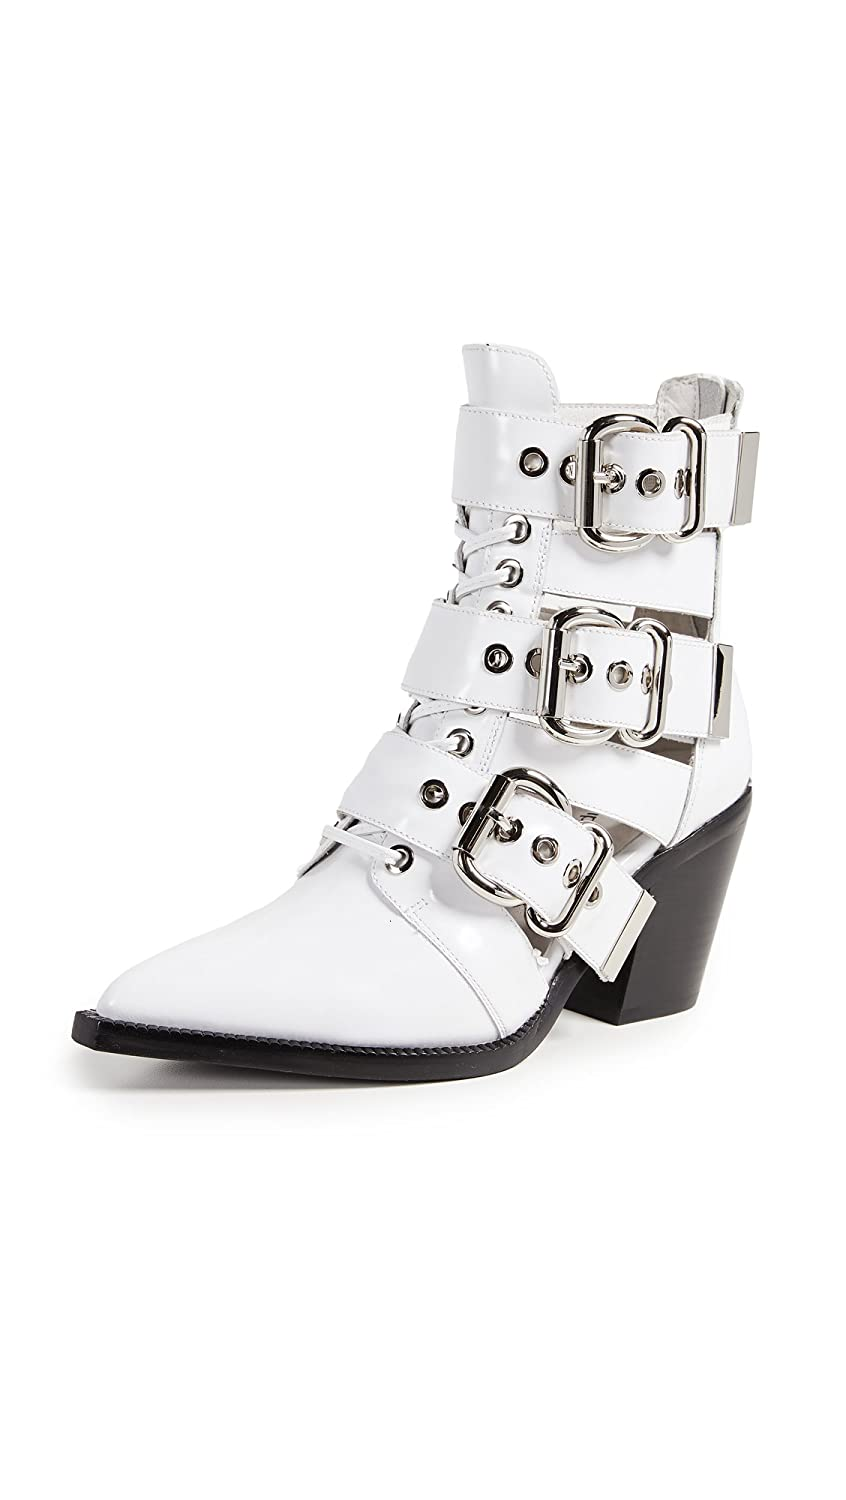 Jeffrey Campbell Women's Caceres Buckle Booties B07FCNCPBV 7.5 B(M) US|White Box